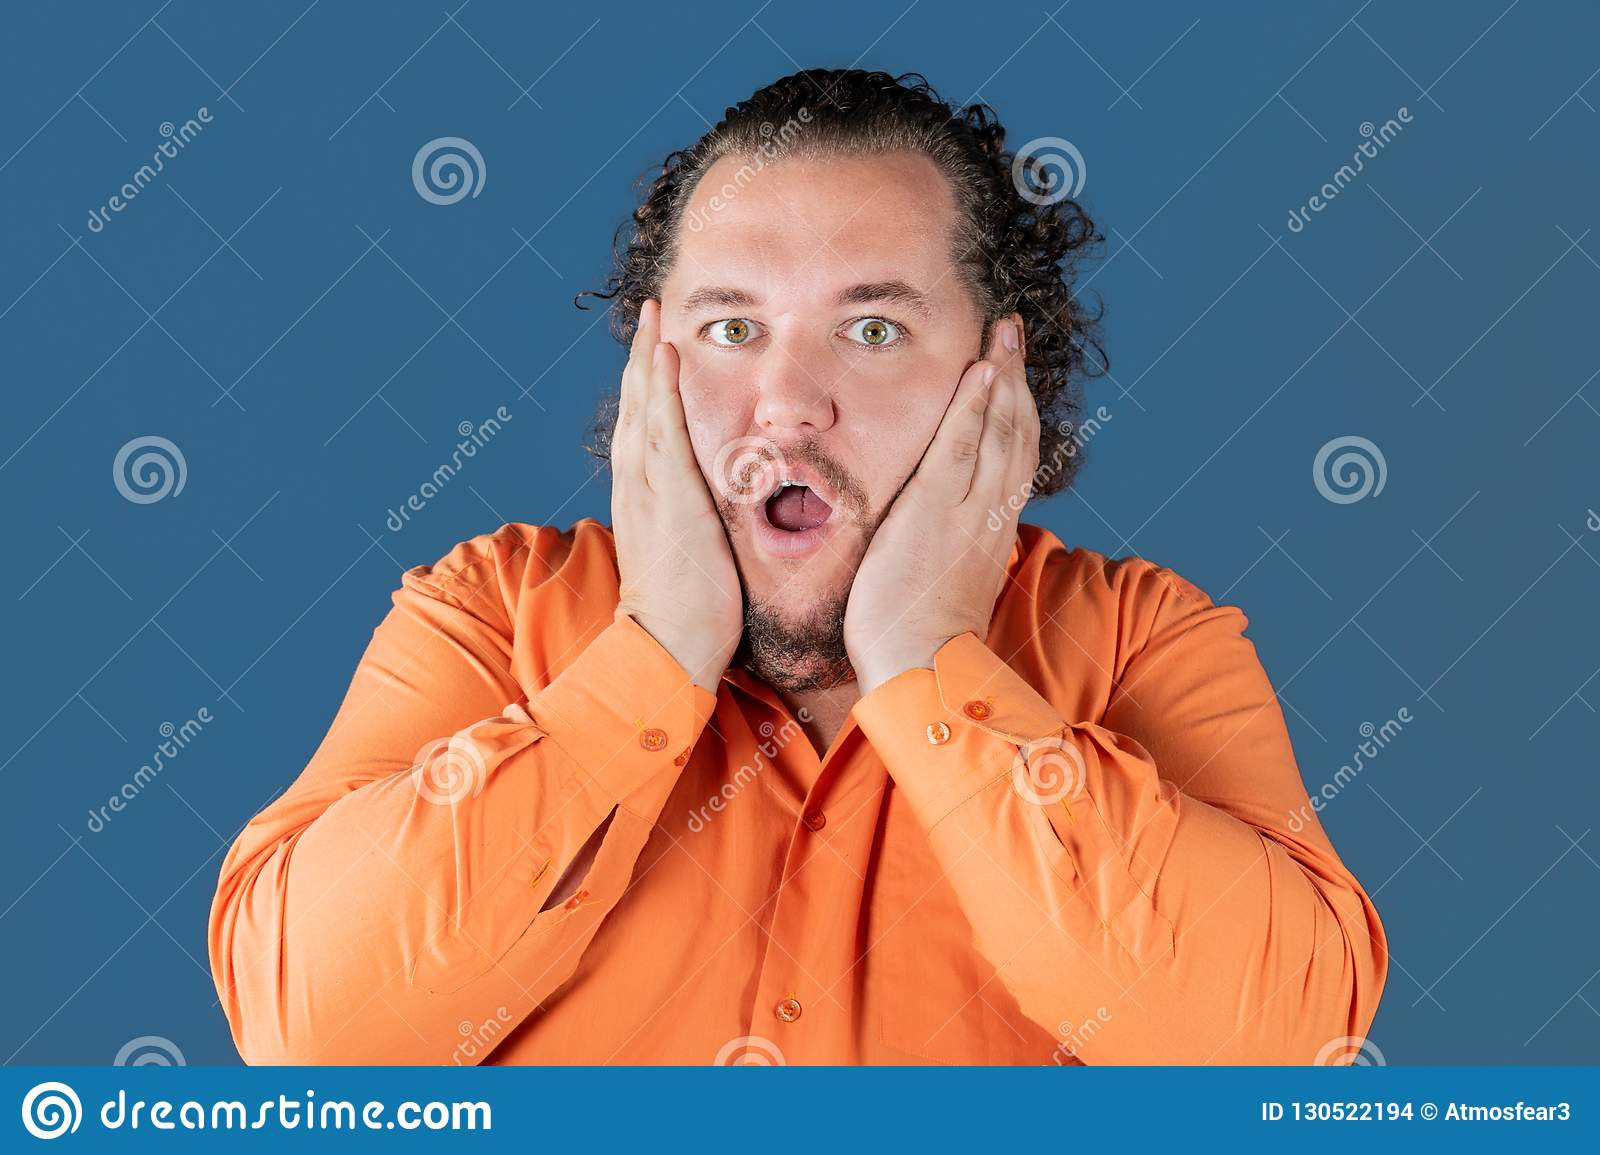 Fat man in orange shirt holds his hands over his face. He is very surprised